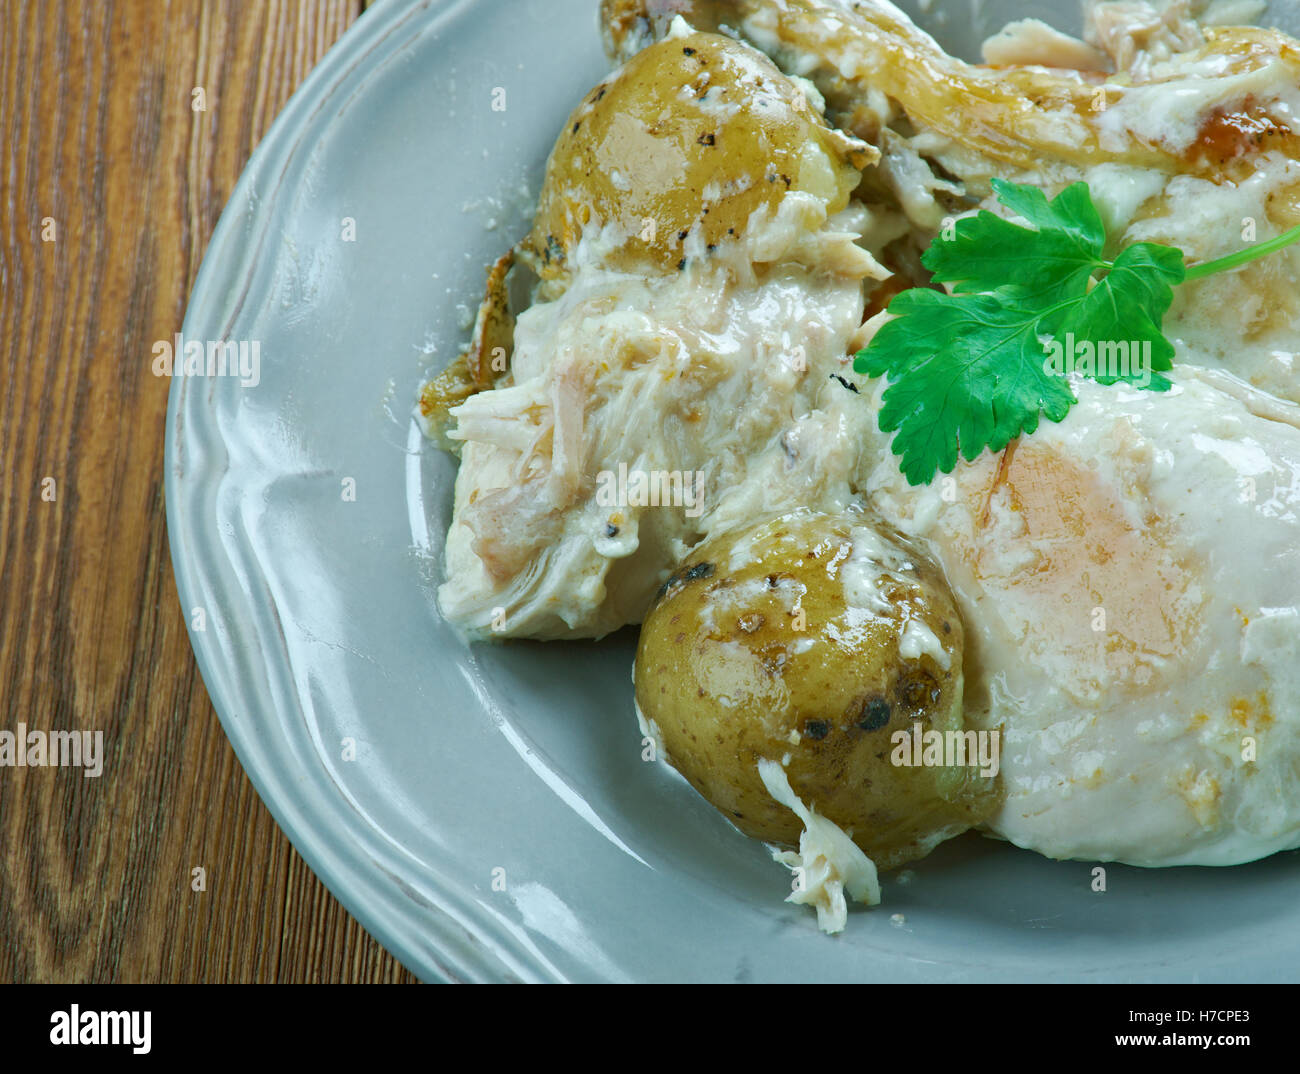 Slow Roasted Chicken And Vegetables Stock Photos & Slow Roasted ...